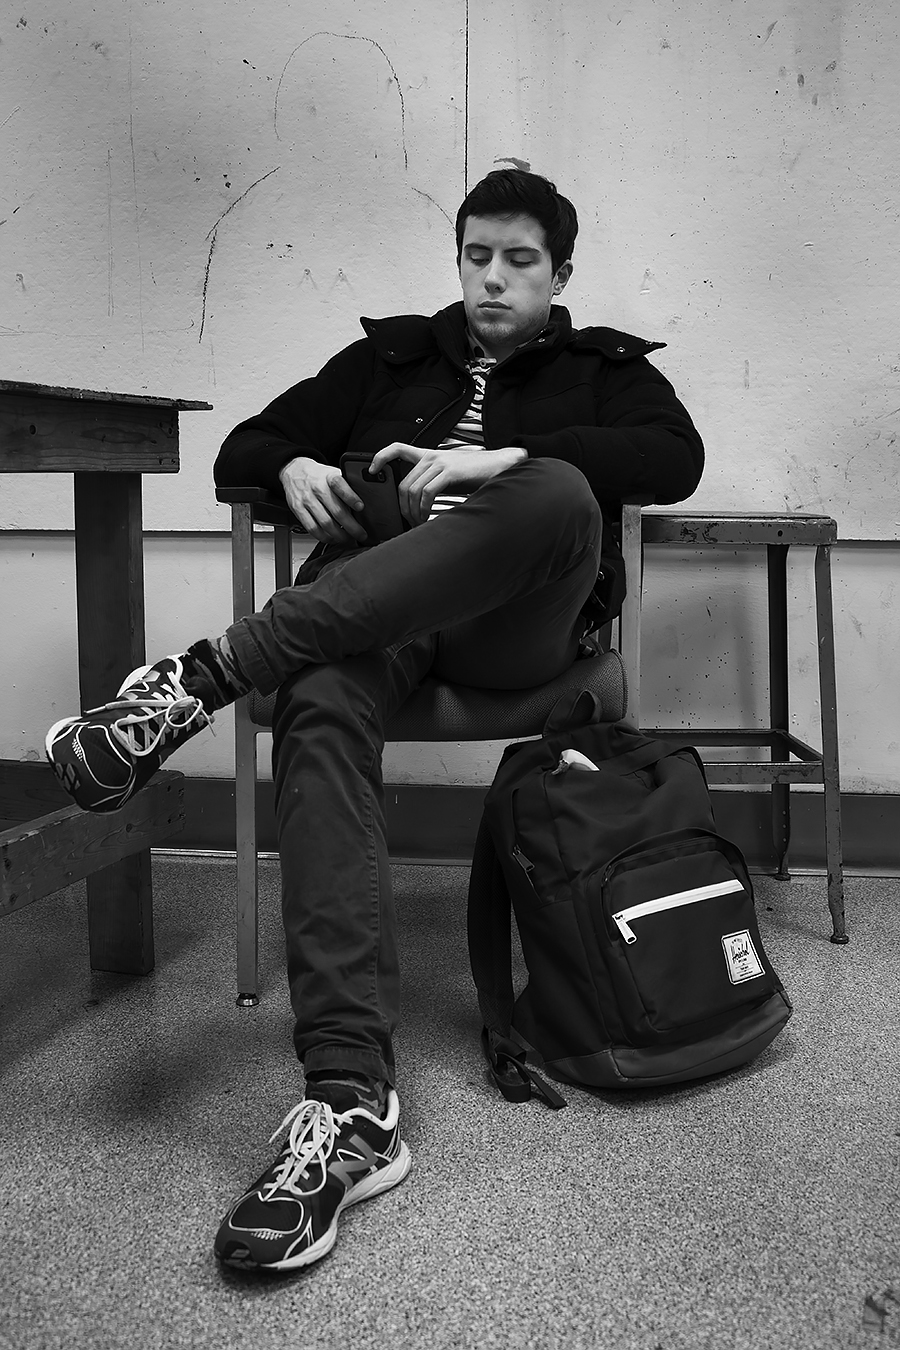 Tyler_Ling_photography_finearts_drawing_cellphones_absorbed_socialmedia_texting_anti-social_engineering_Julien_Henry_Penn_frontshot_unaware_black_white